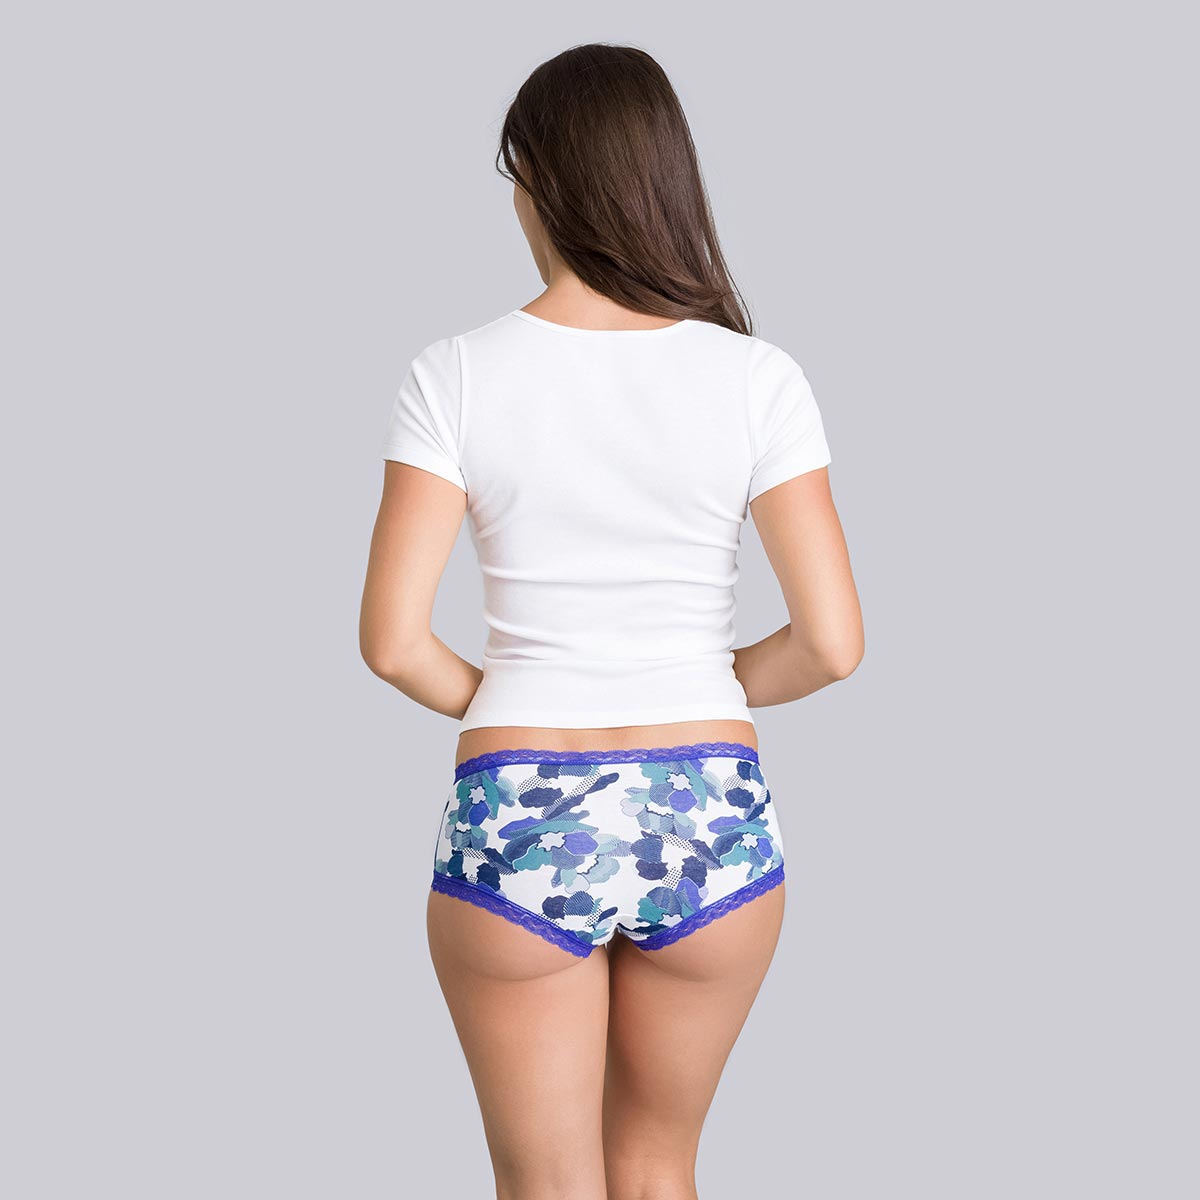 2 pairs of floral blue boy shorts - Cotton Fancy-PLAYTEX